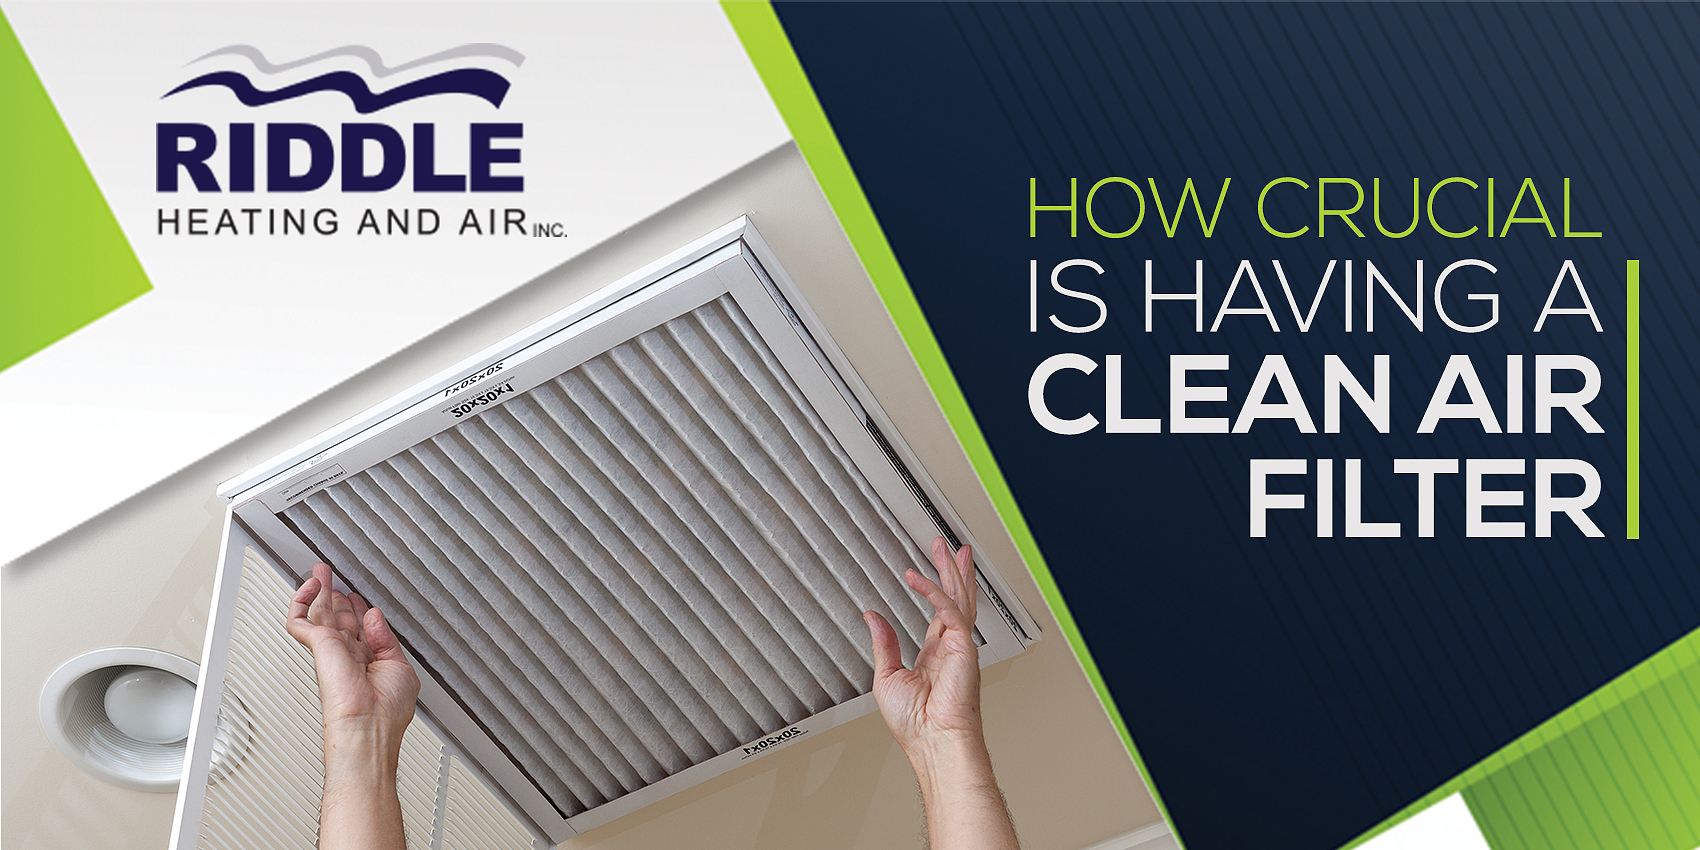 How Crucial Is Having a Clean Air Filter?